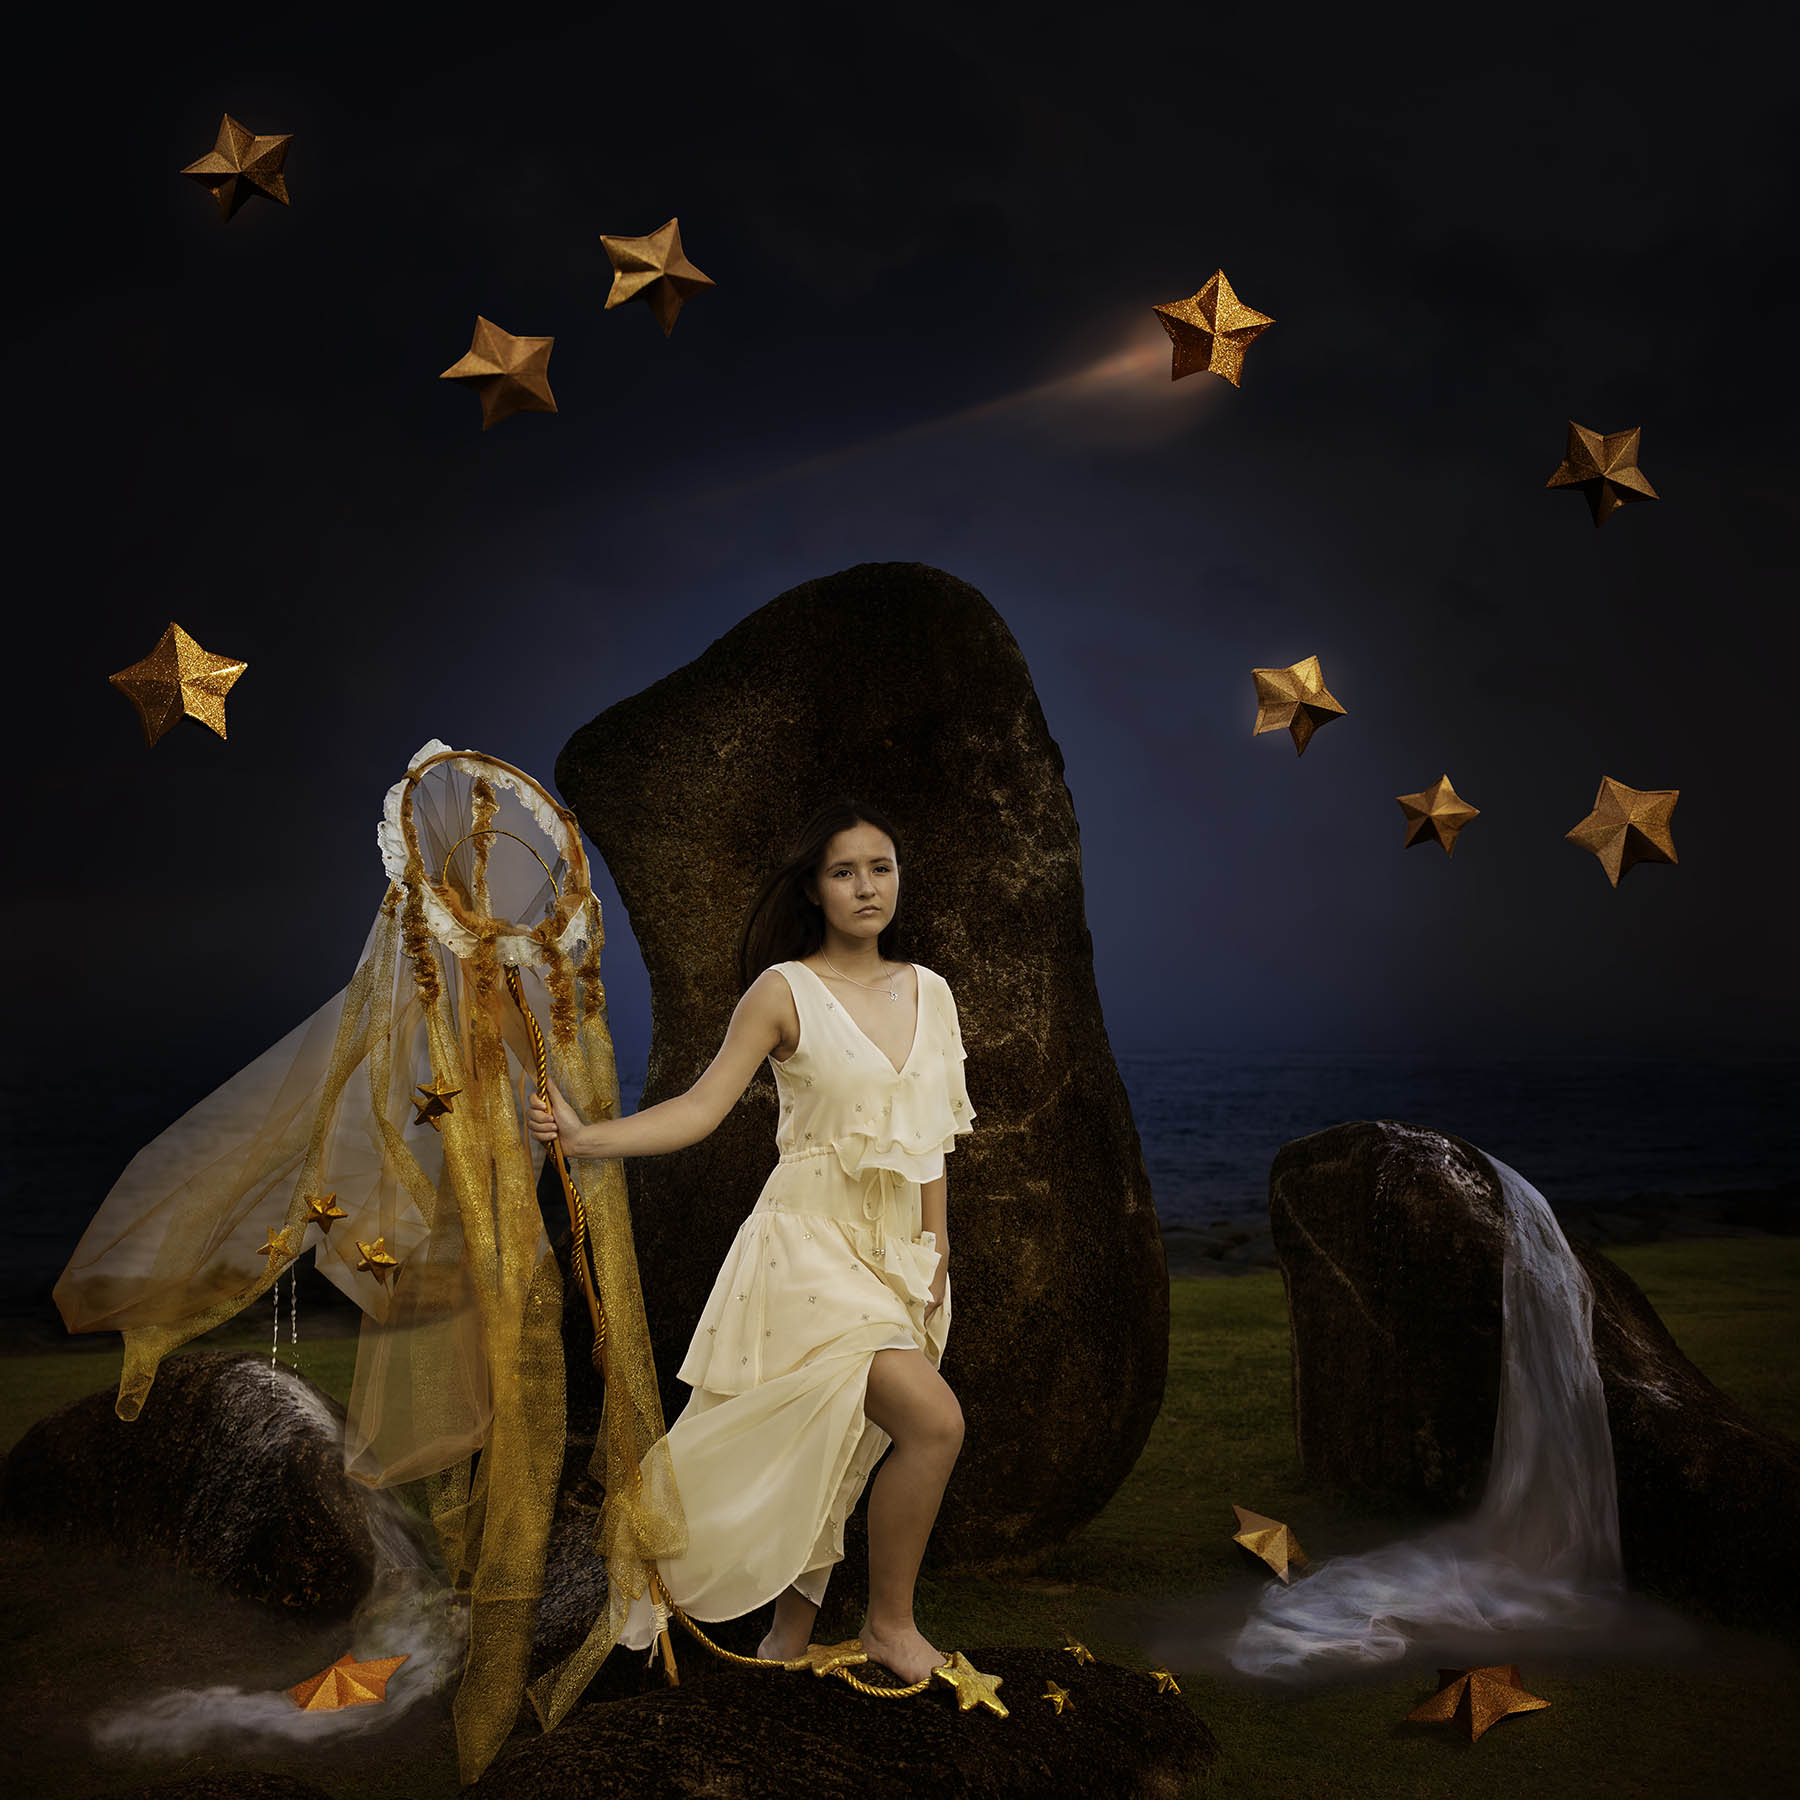 Lady of the starlit sky